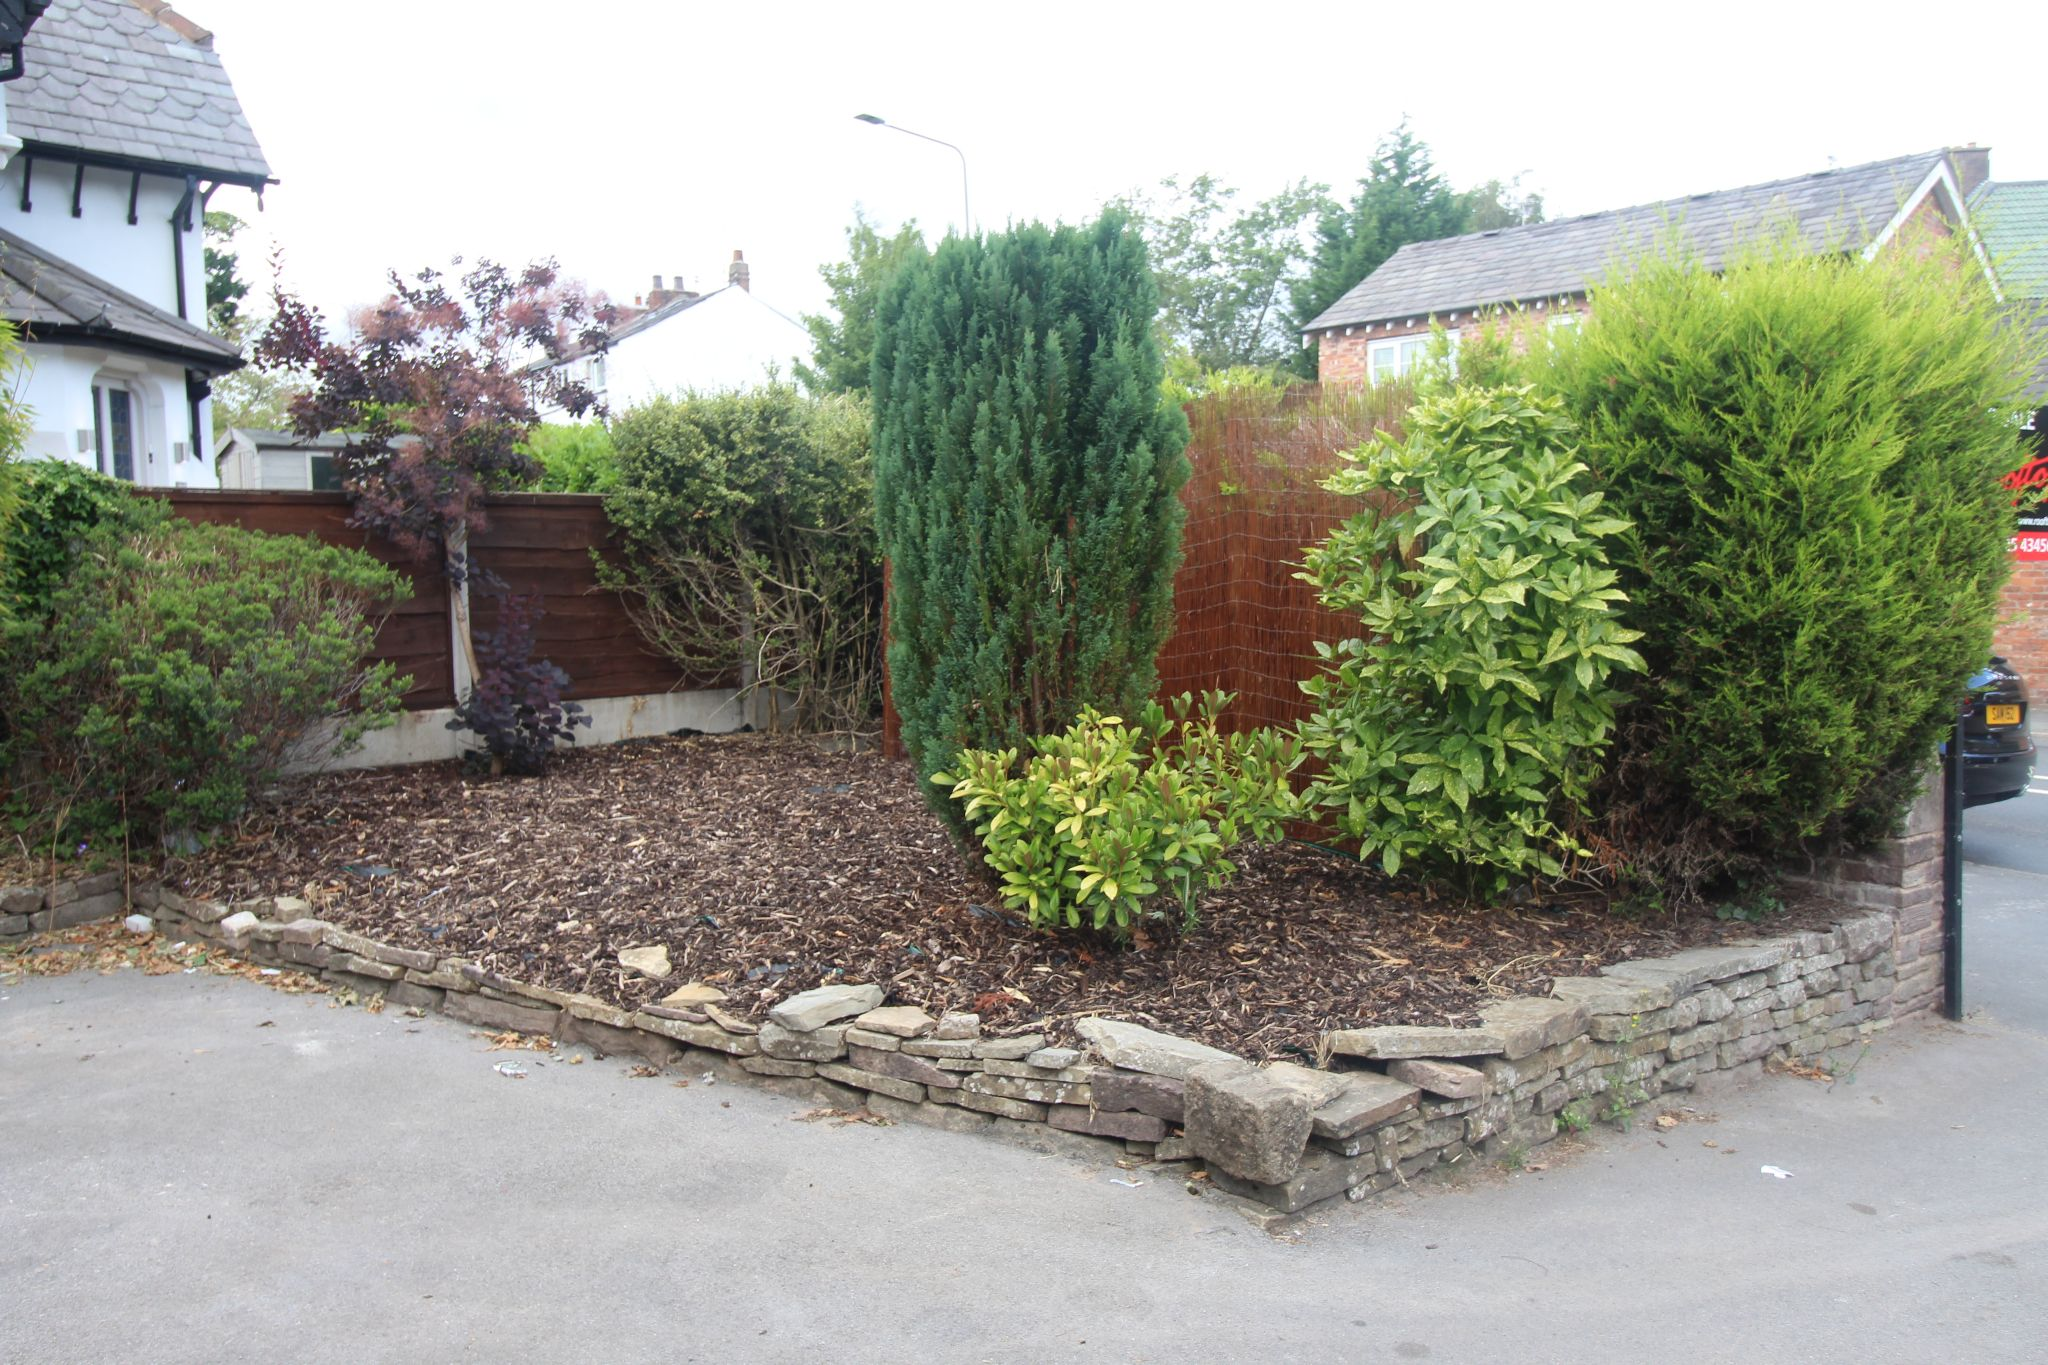 3 Bedroom Detached House For Sale - Driveway